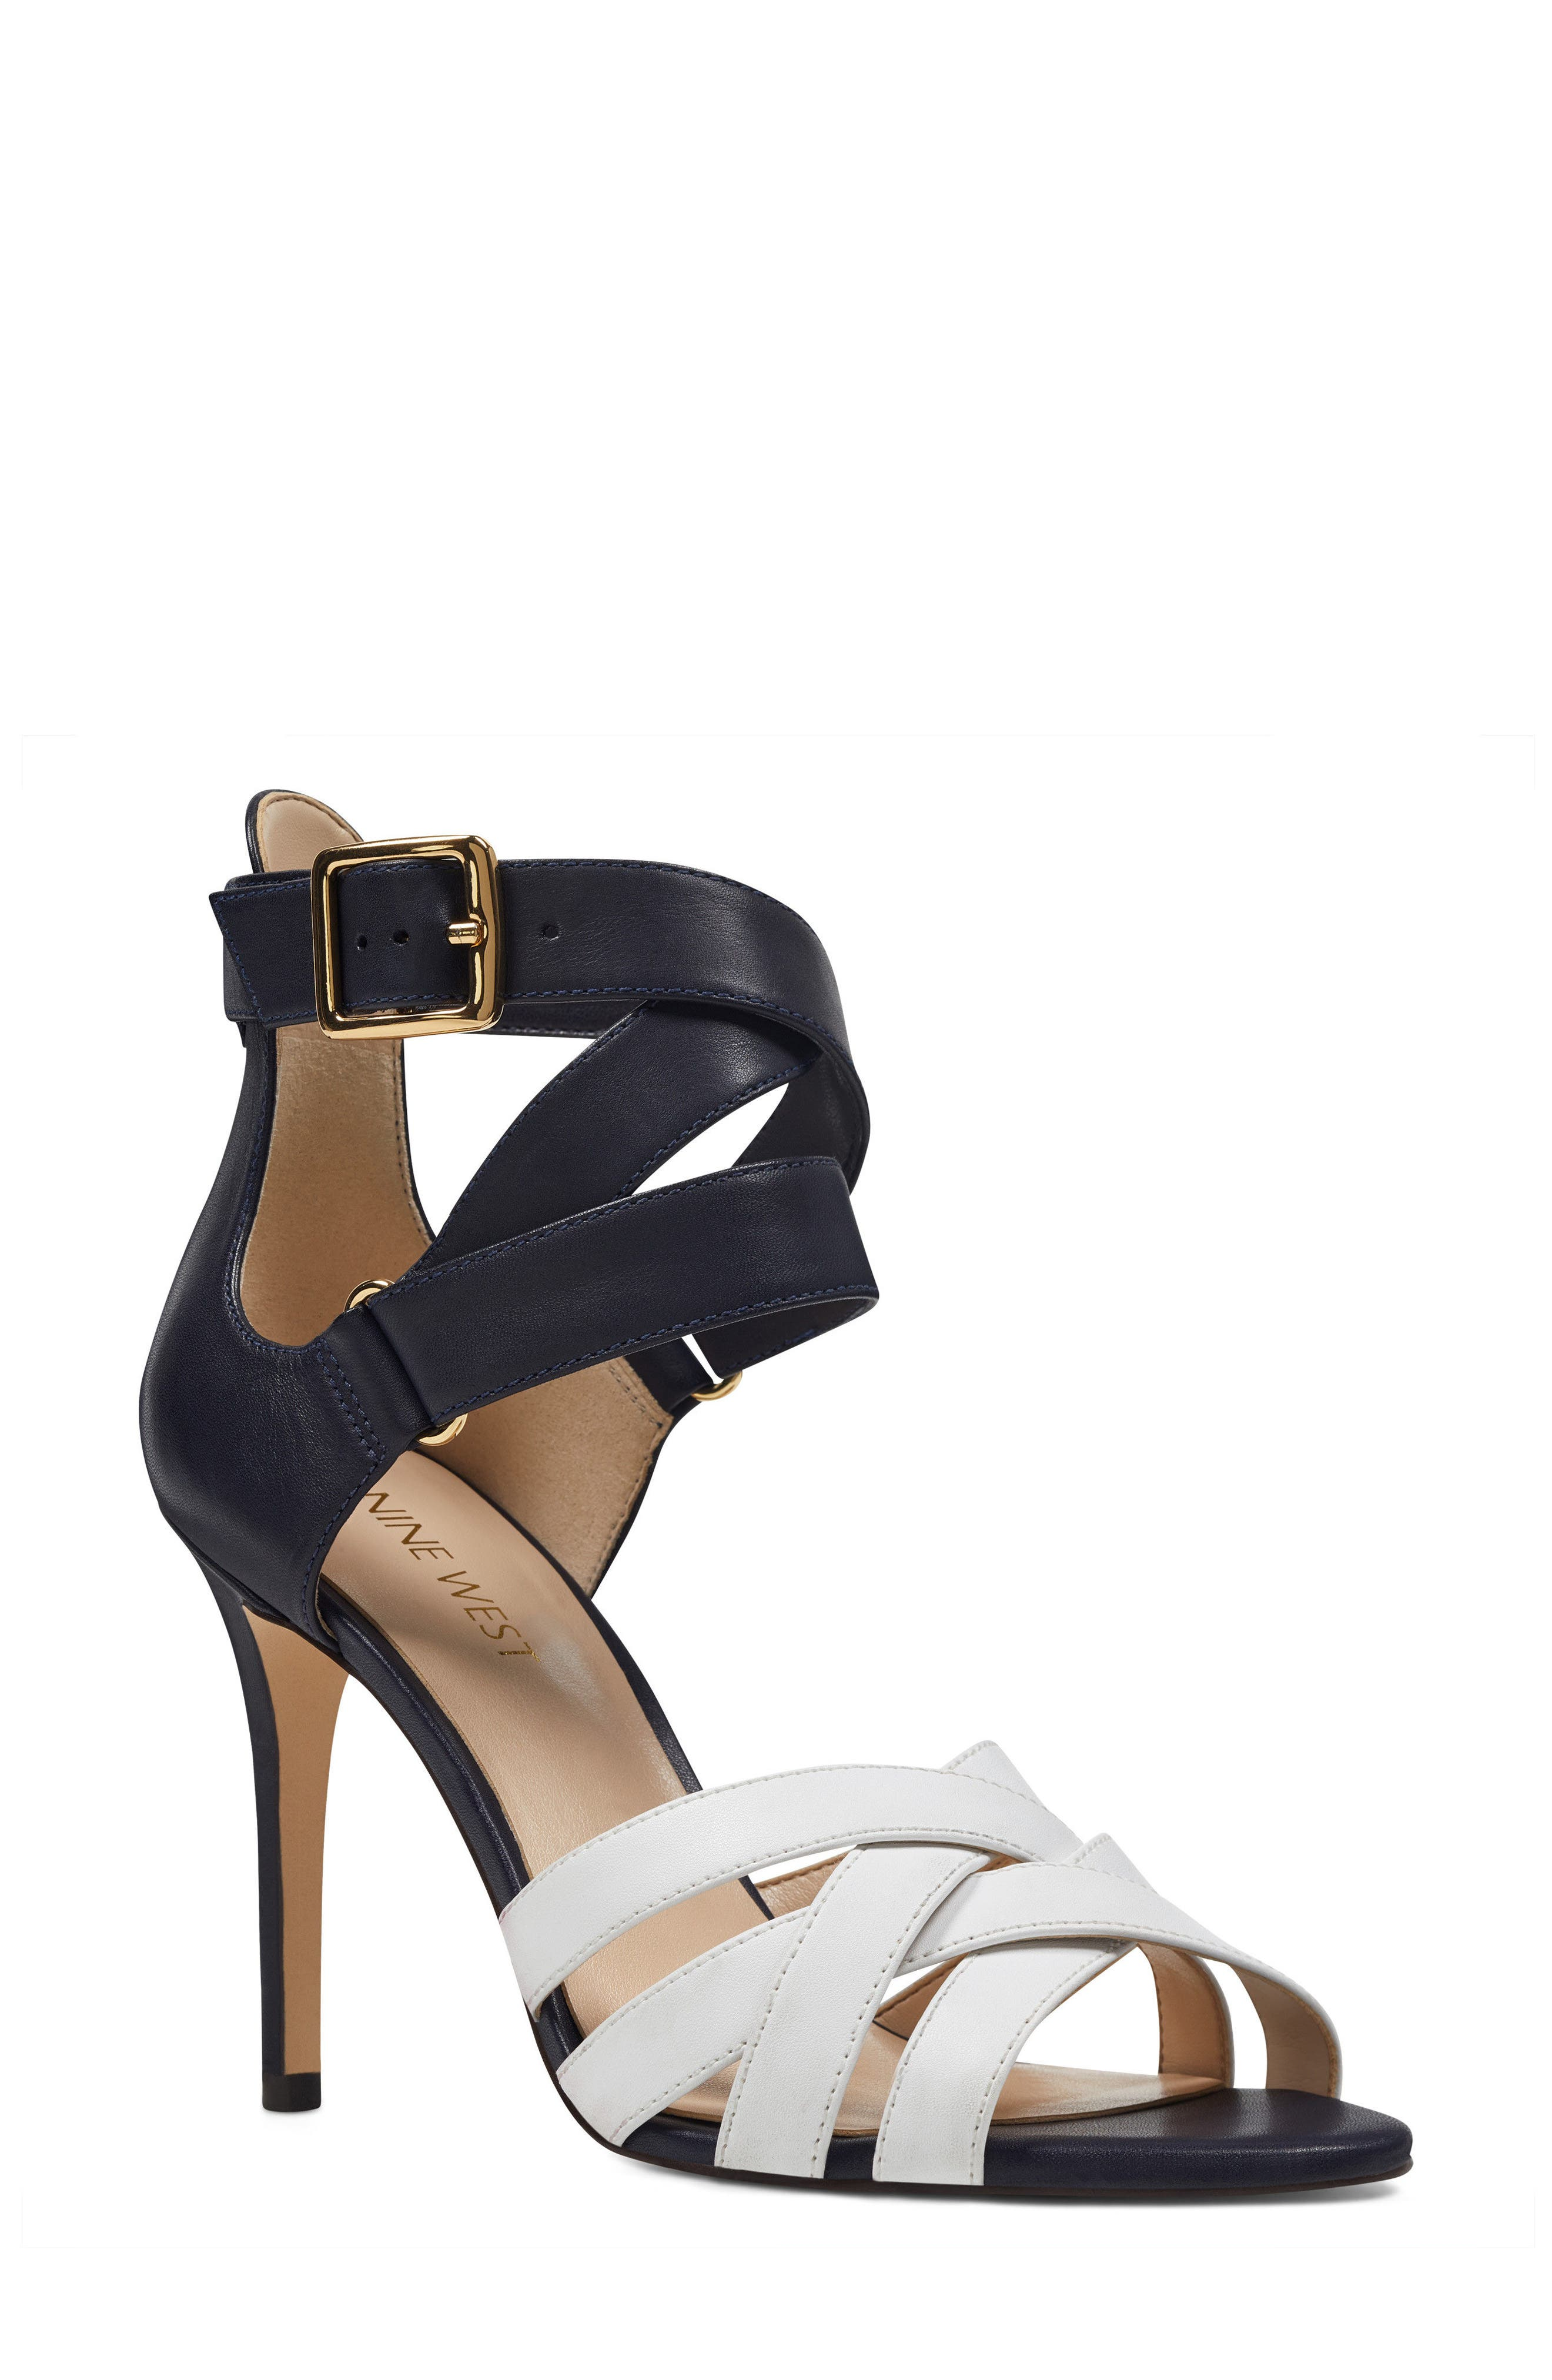 McGlynn Strappy Sandal,                         Main,                         color, Navy/ White Leather